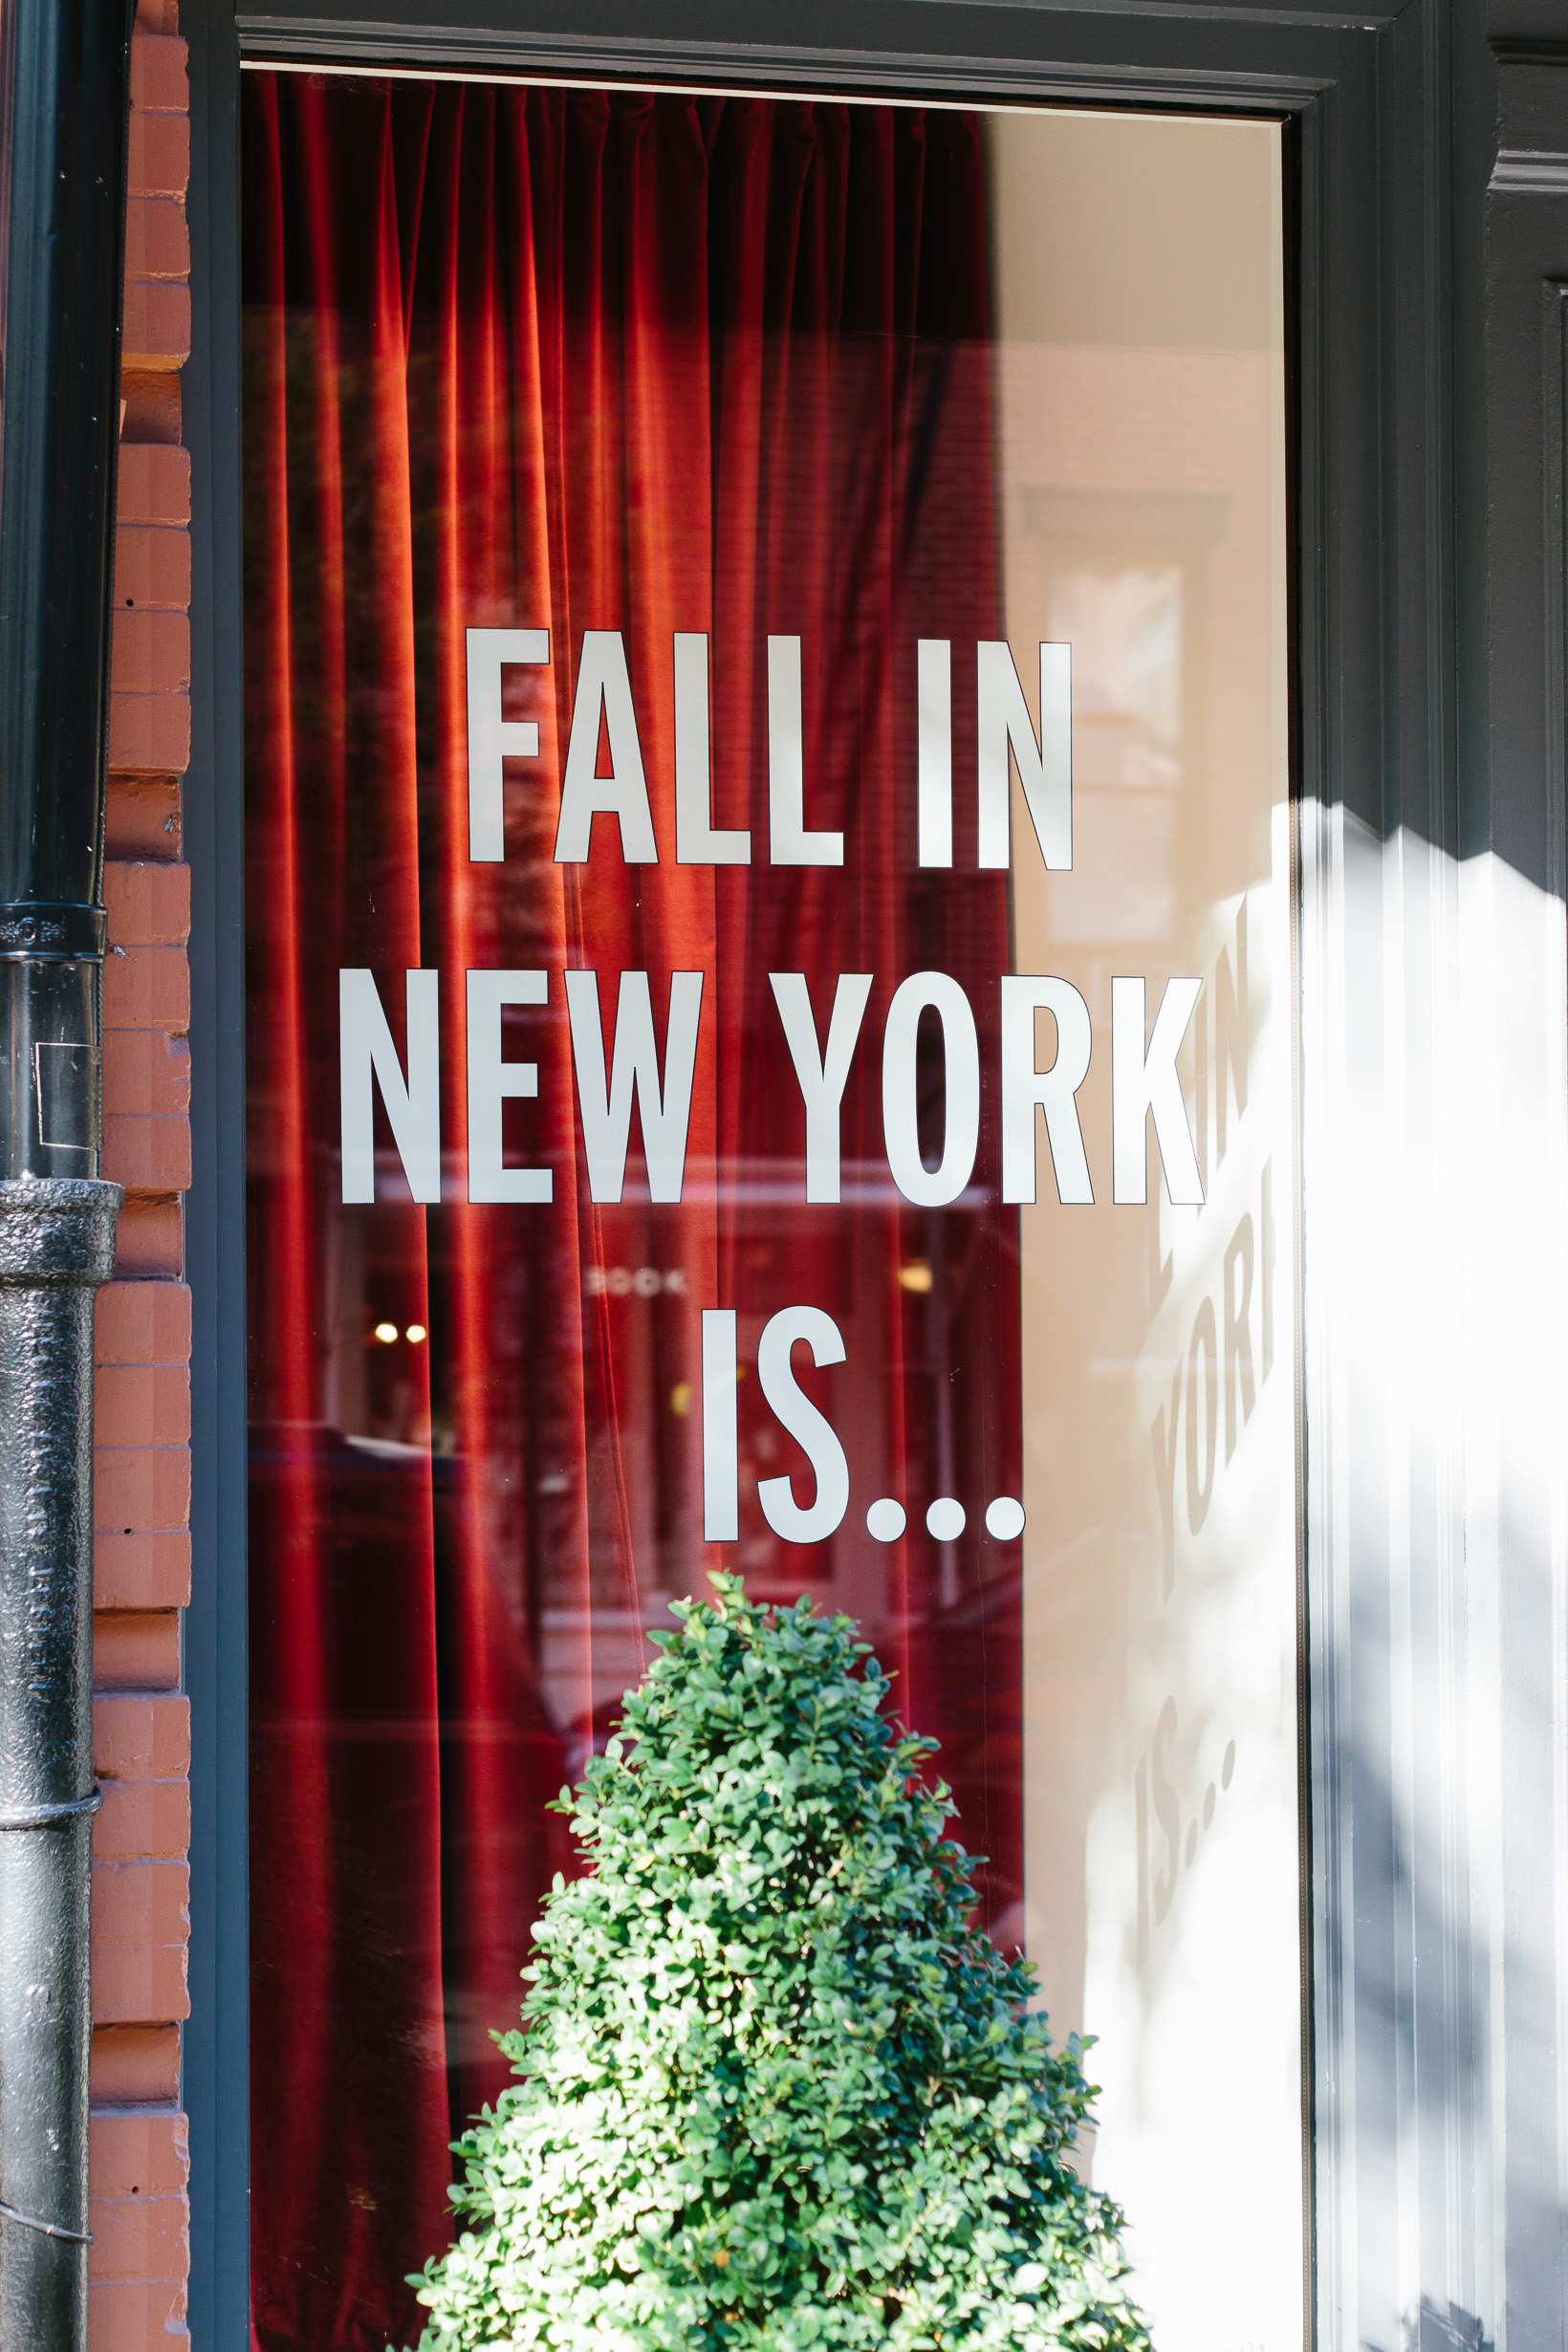 west-village-fall-3122